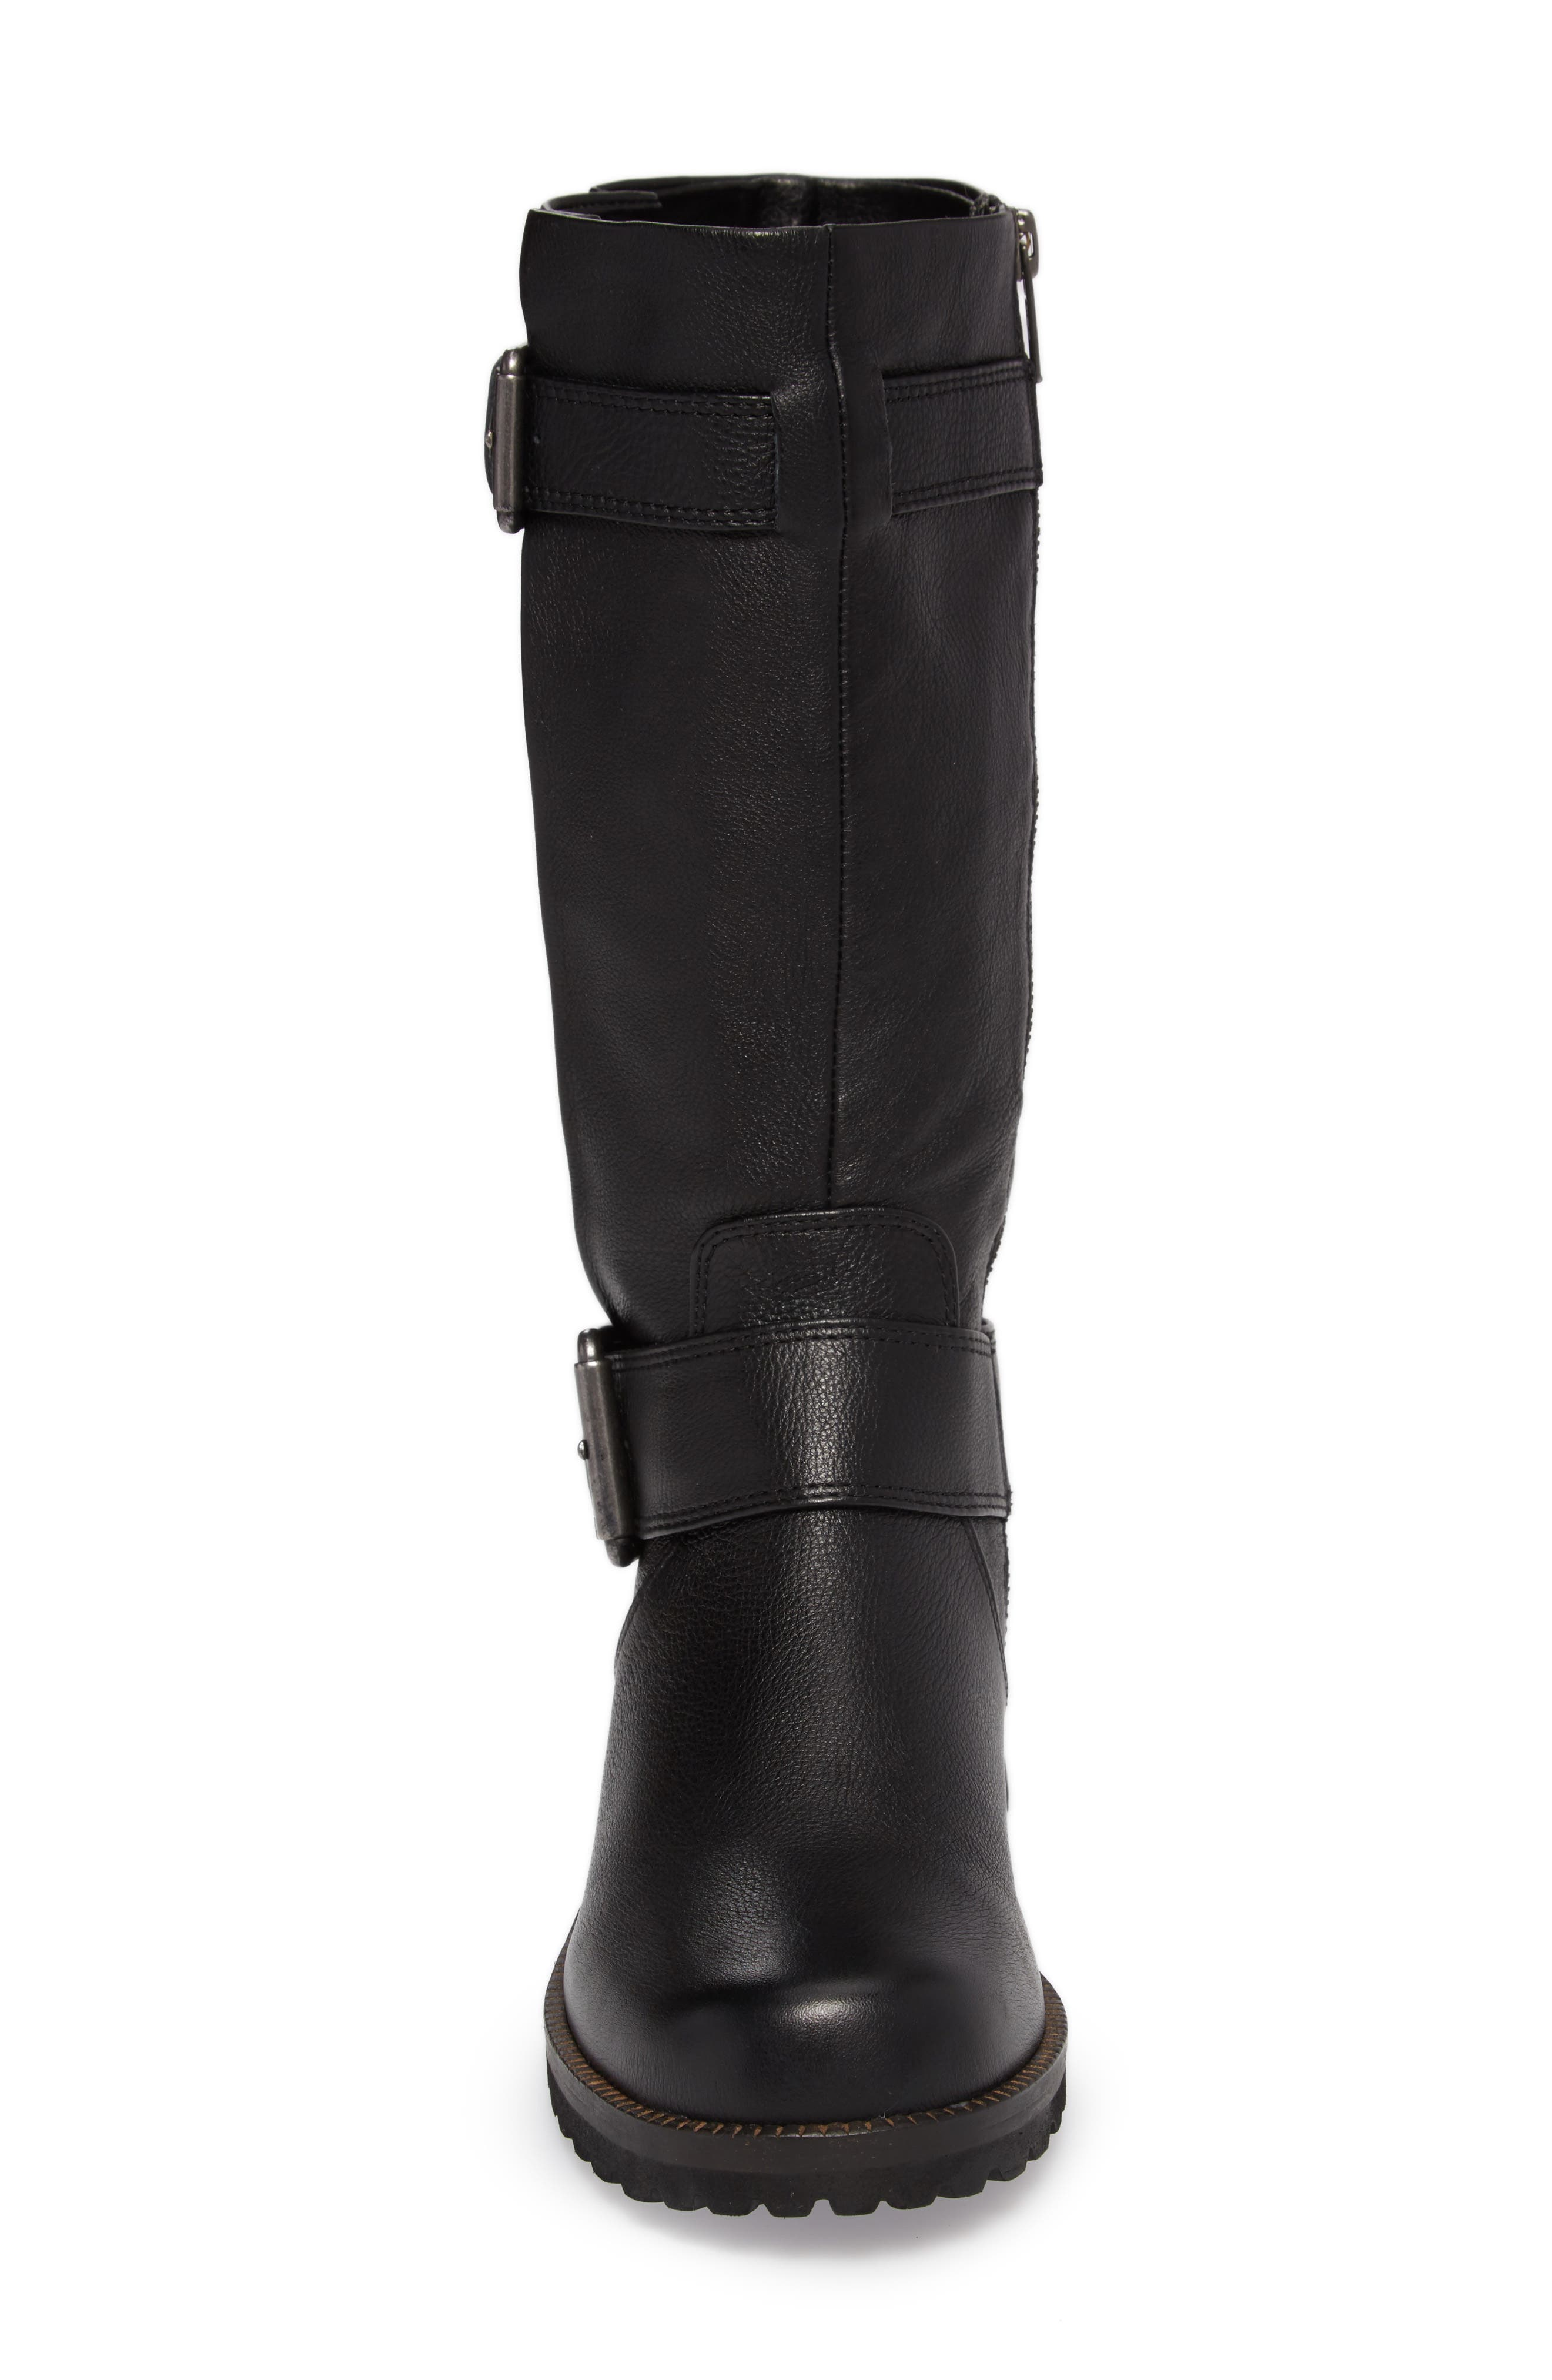 GENTLE SOULS BY KENNETH COLE, 'Buckled Up' Boot, Alternate thumbnail 4, color, BLACK